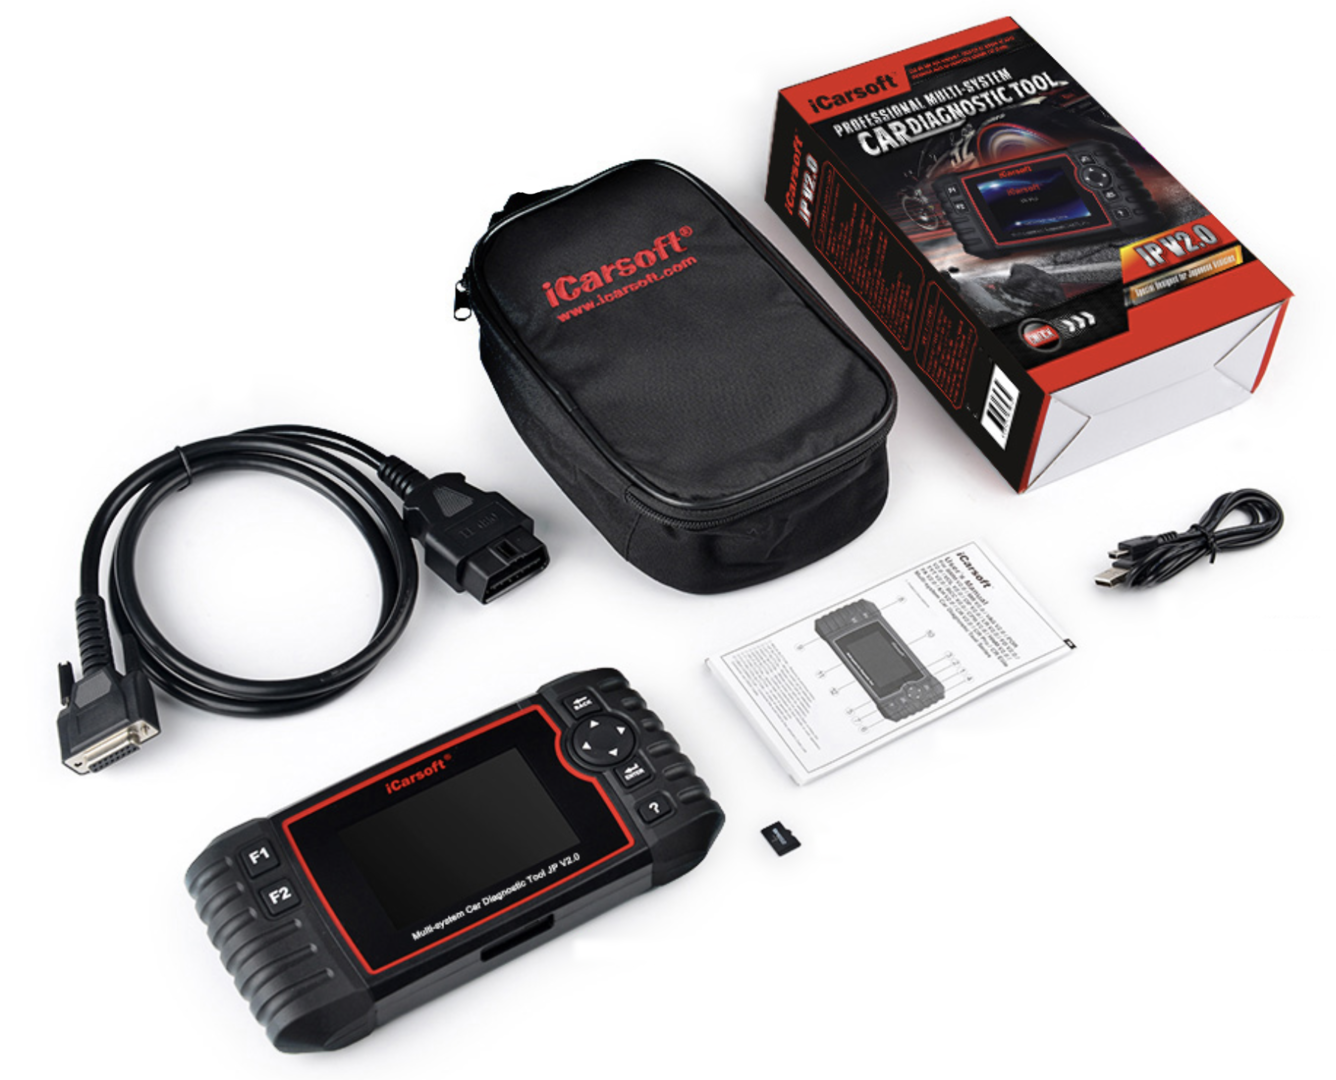 valise-diagnostic-icarsoft-jp-V2.0-7